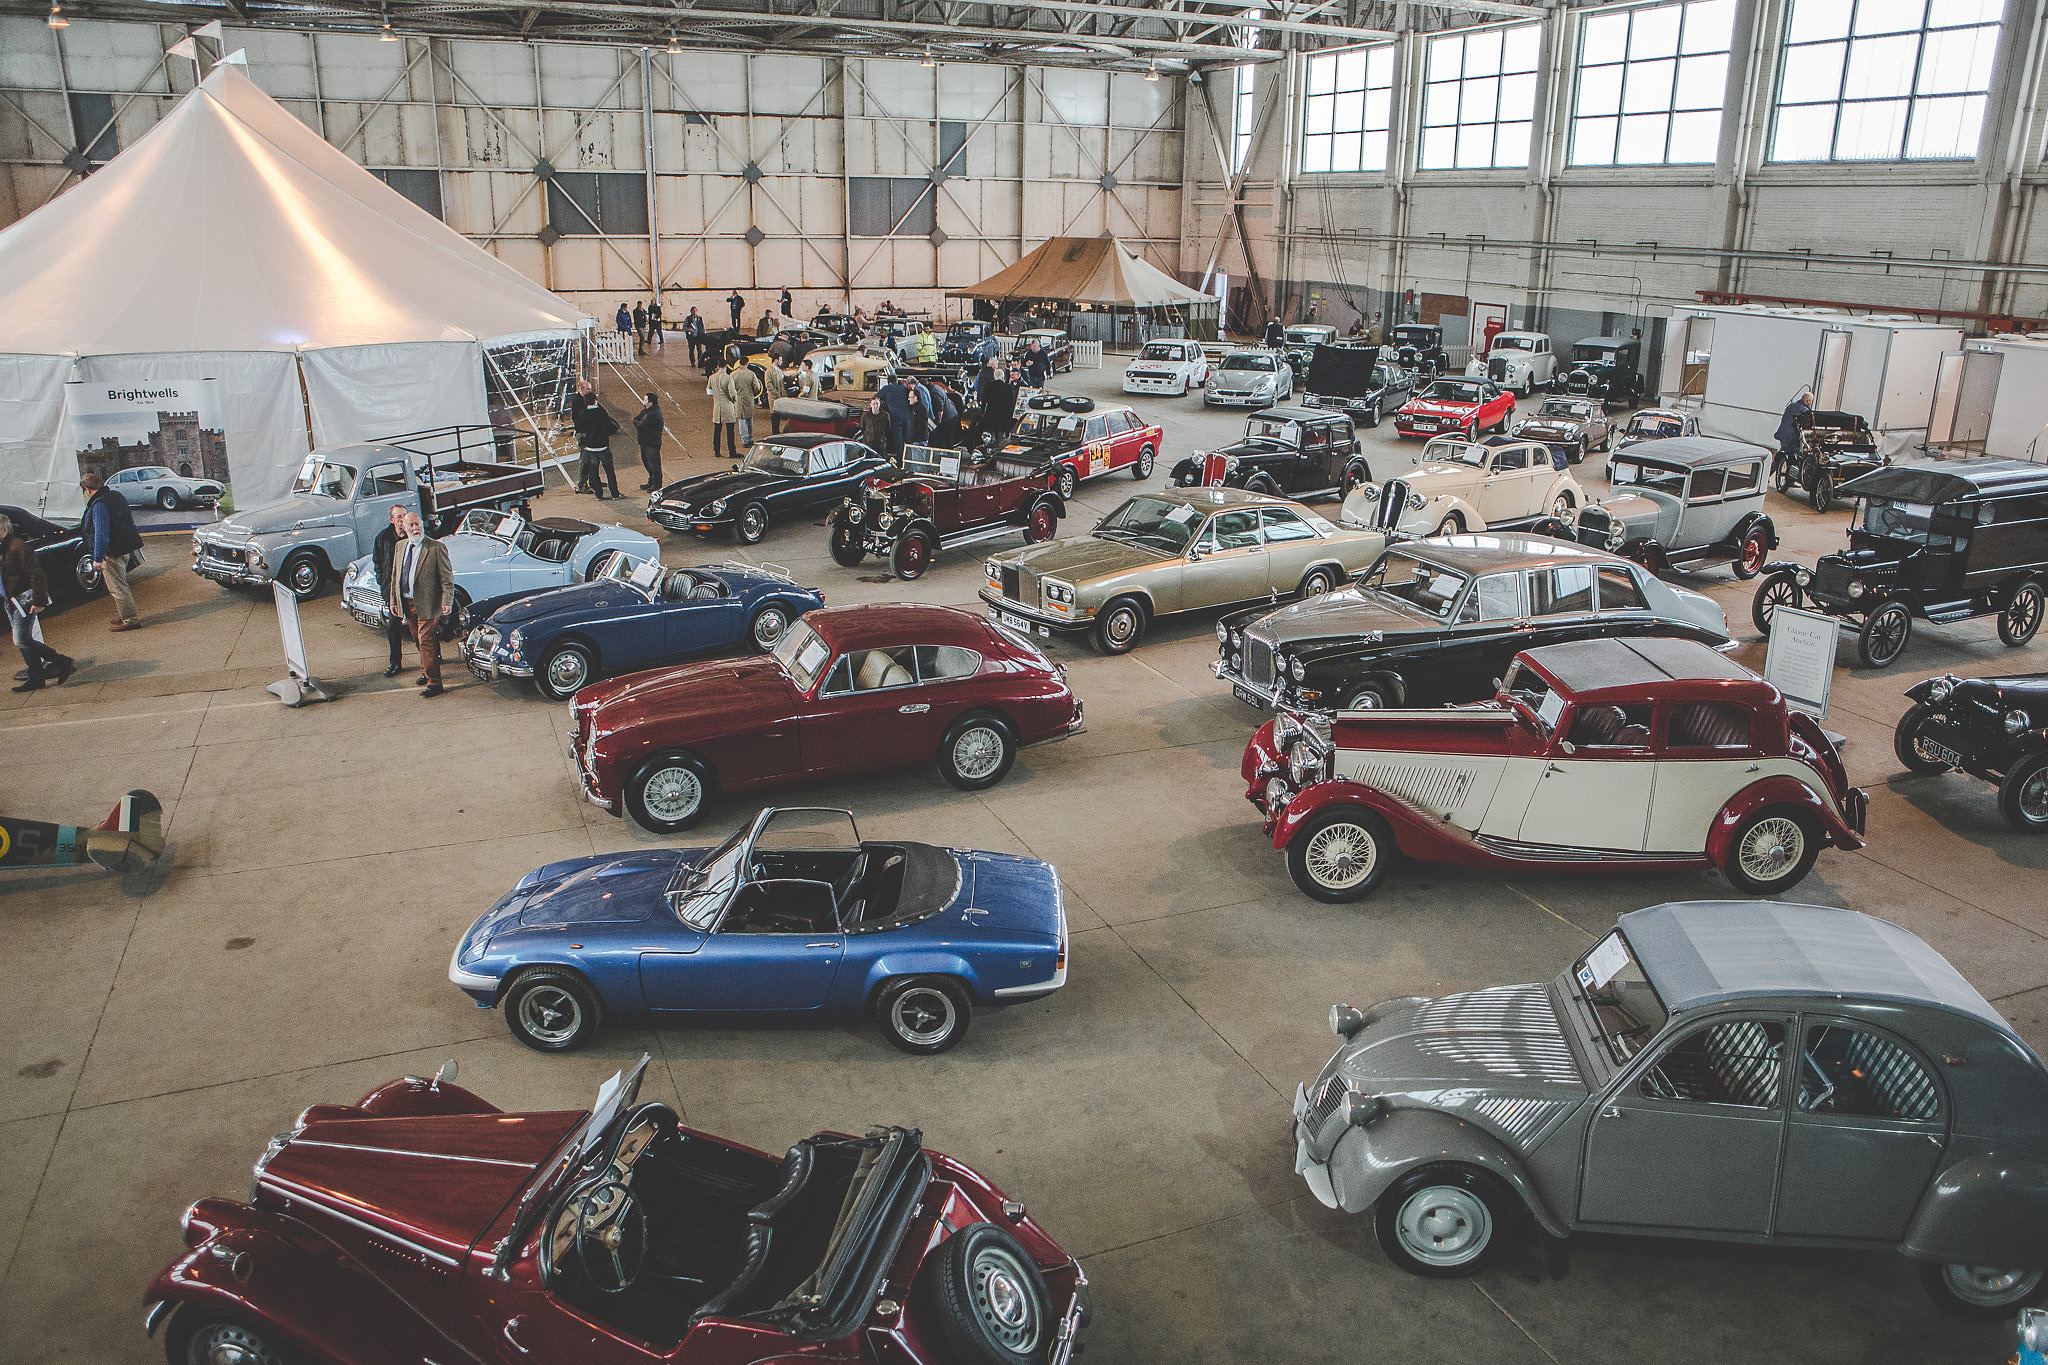 Brightwells auction, Classic car and aircraft show adds Brightwells auction, ClassicCars.com Journal